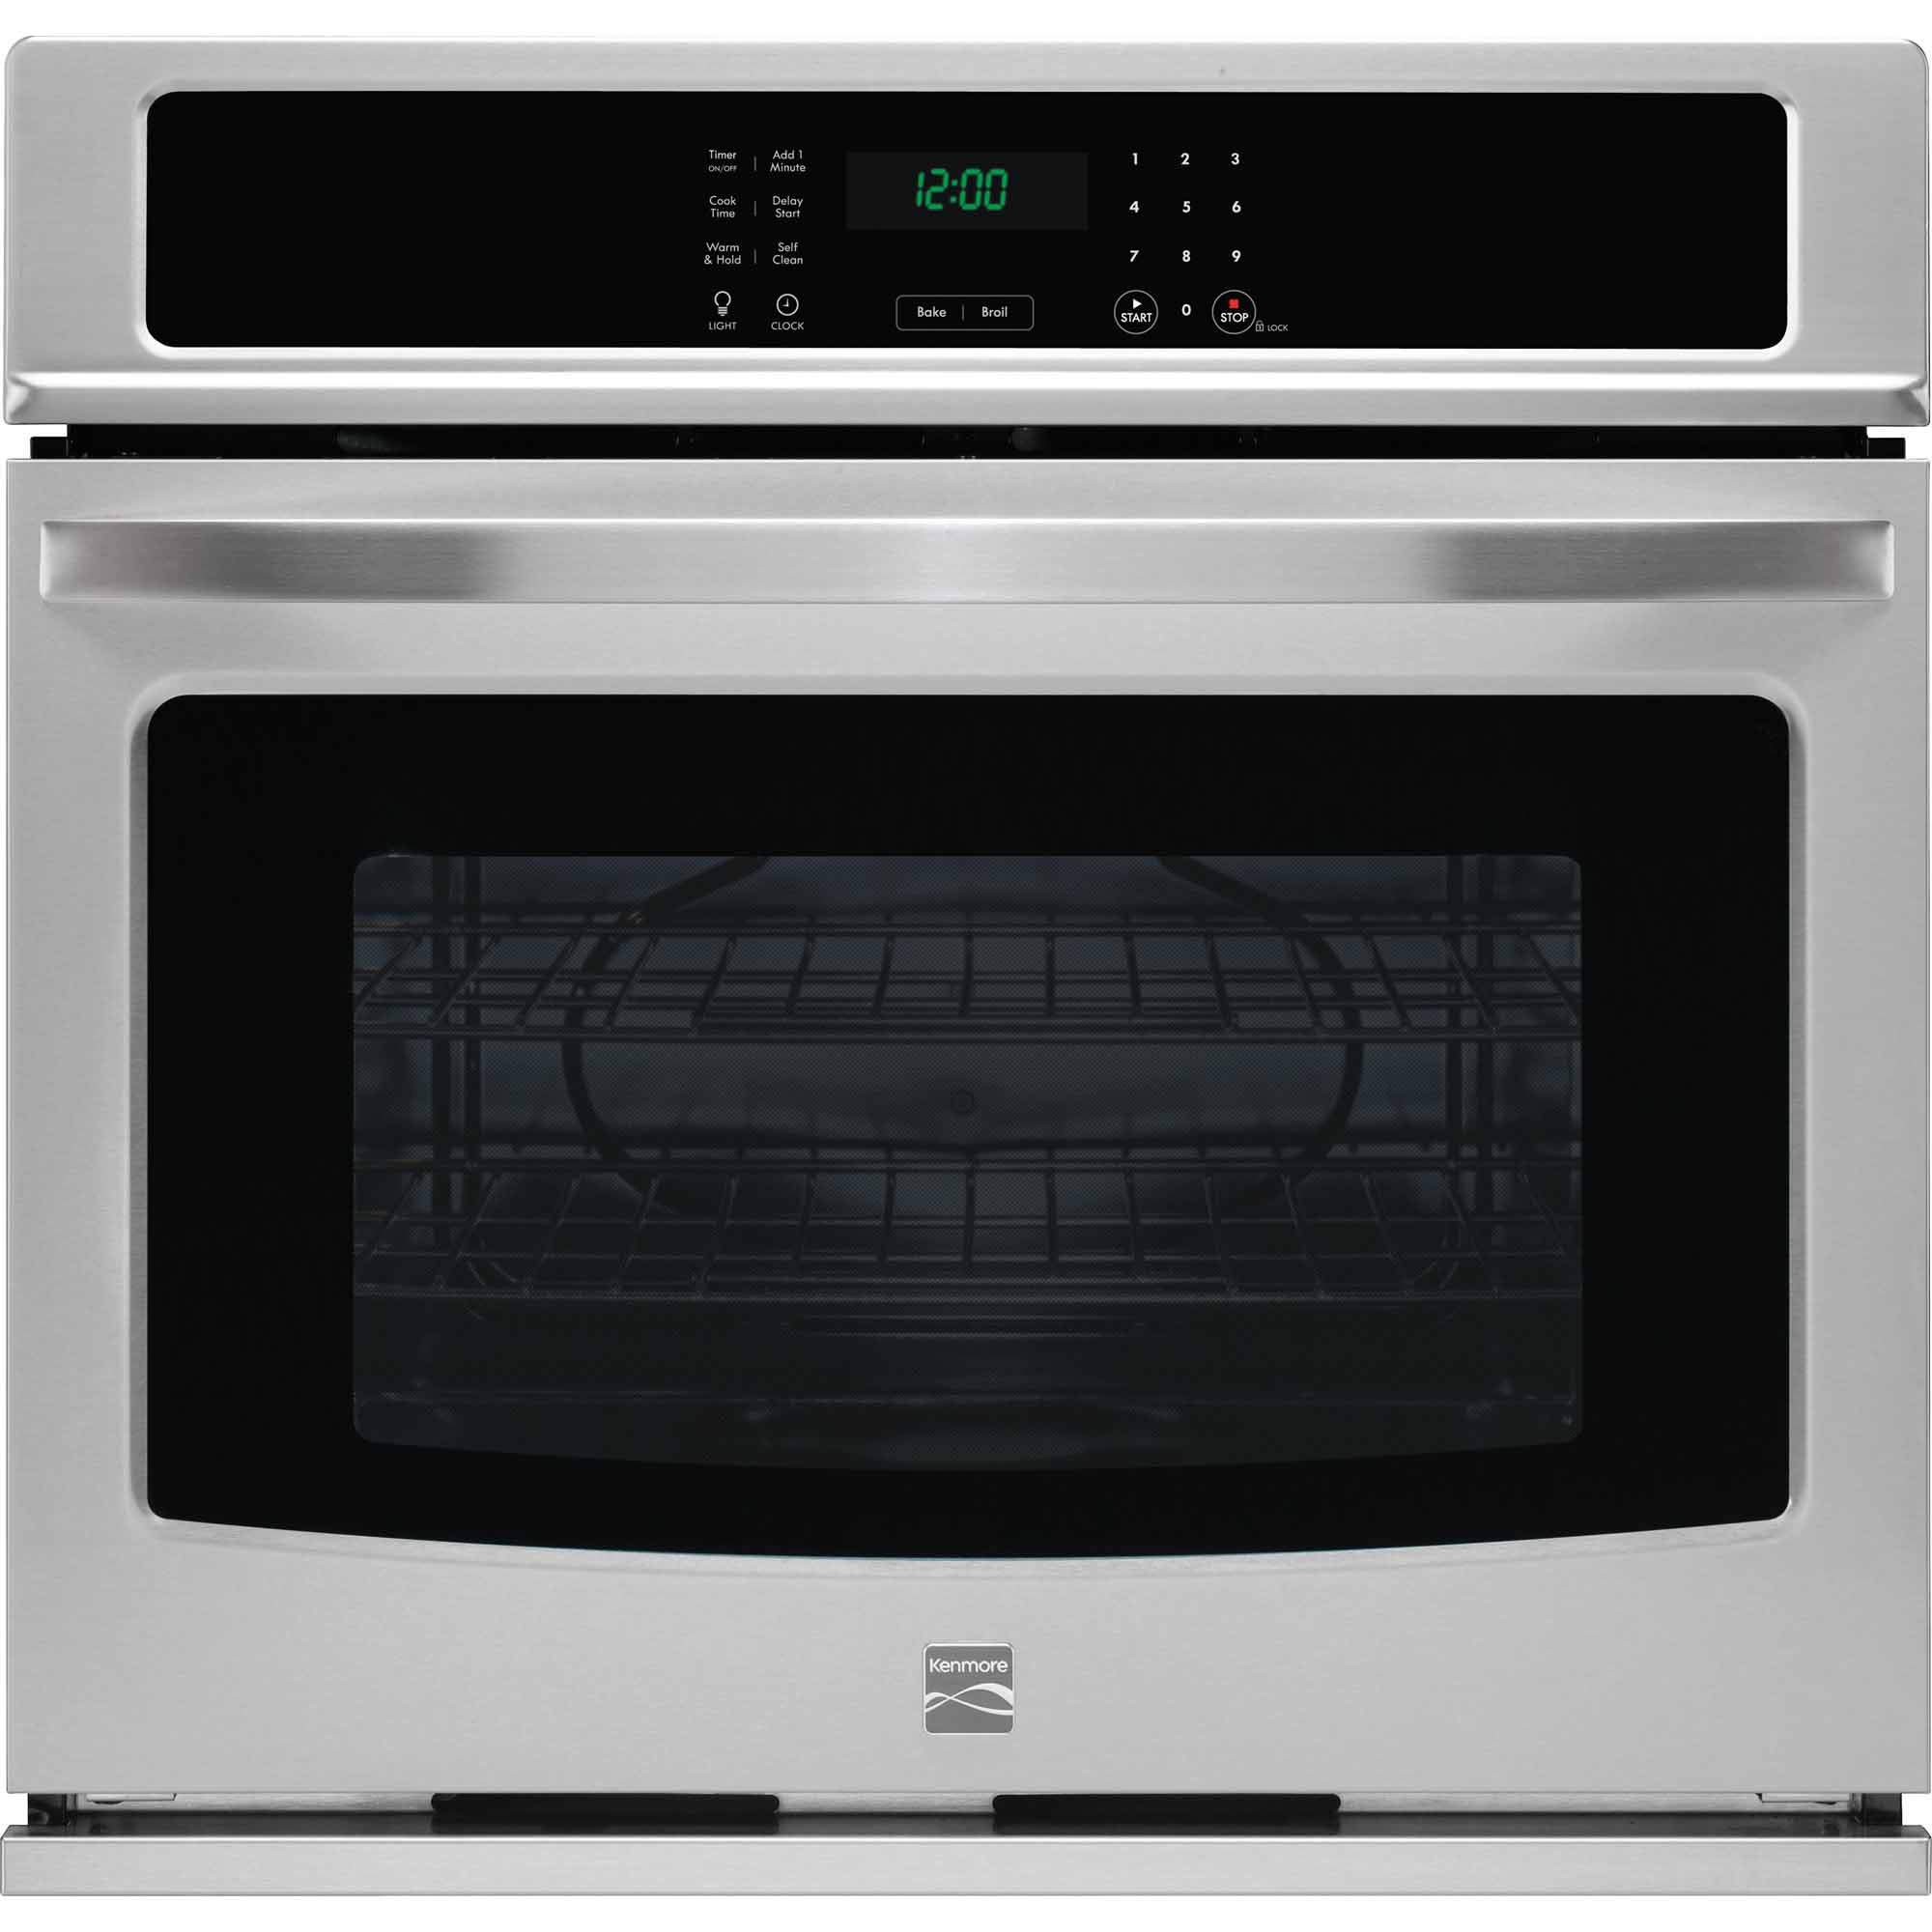 Kenmore 49423 30 Electric Self-Clean Single Wall Oven - Stainless Steel